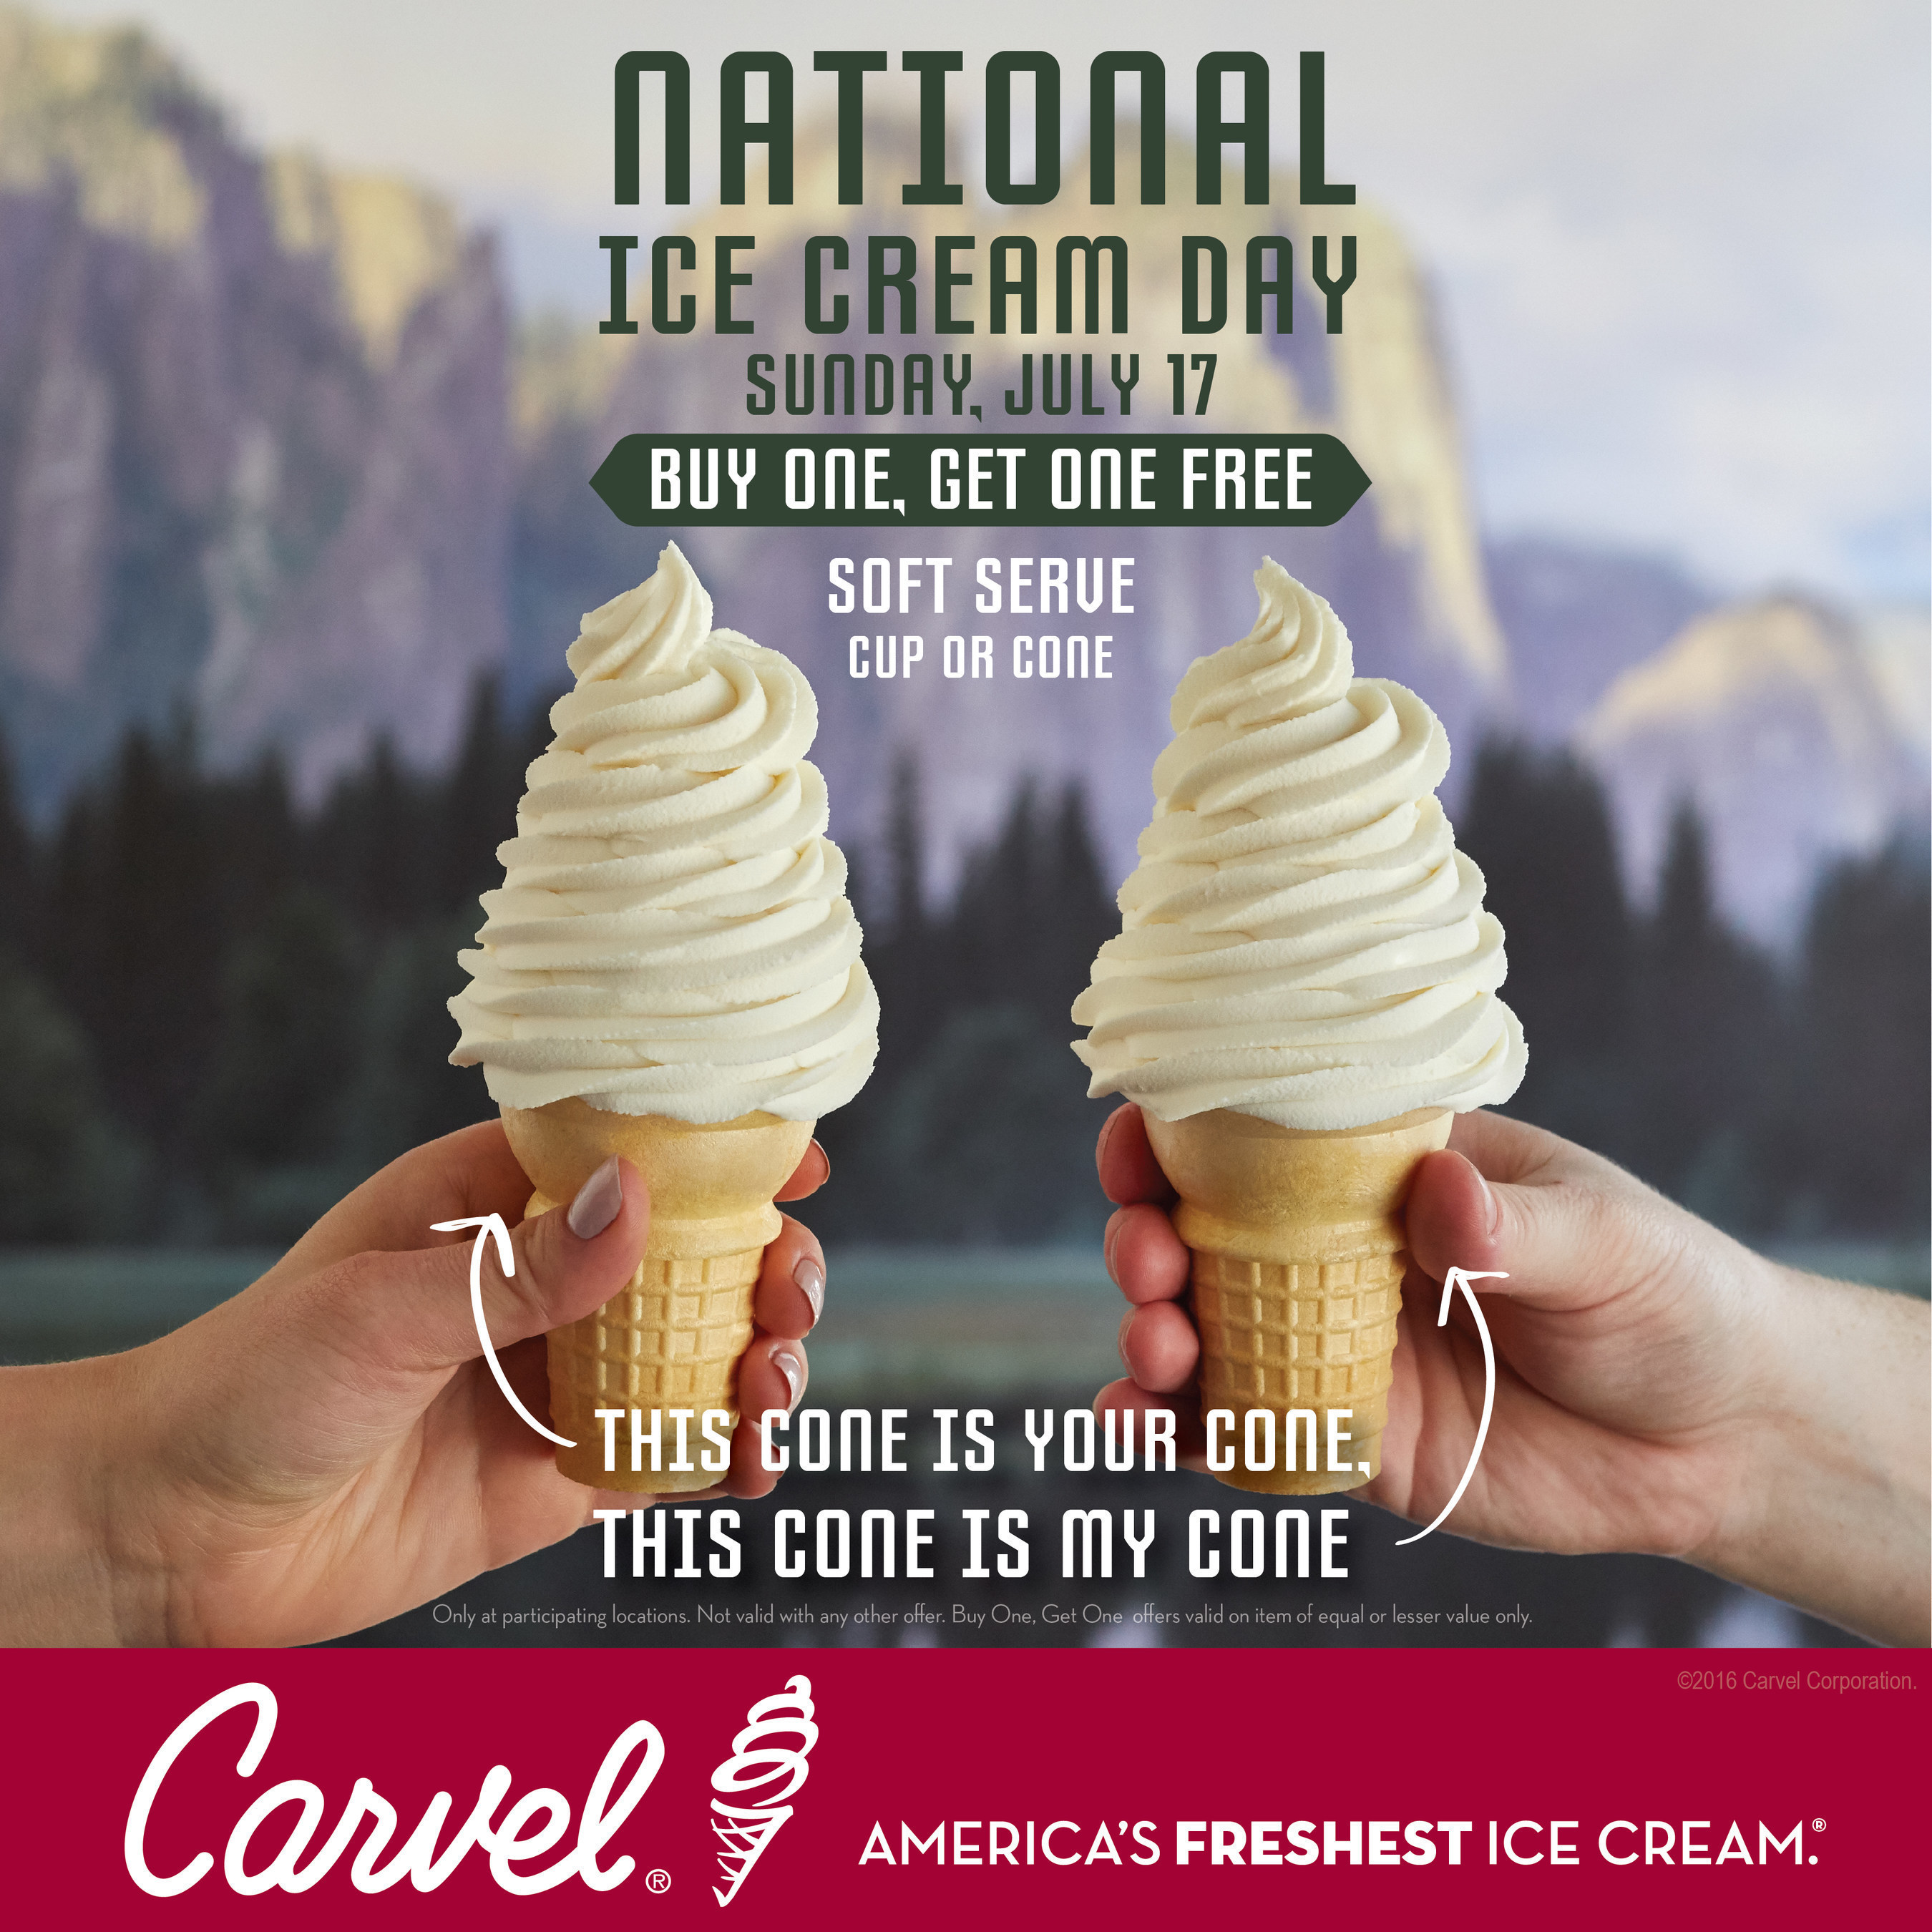 To Lick or Bite? Carvel celebrates National Ice Cream Day by solving the debate and offering Buy One Get One FREE ice cream cones all day on July 17th!